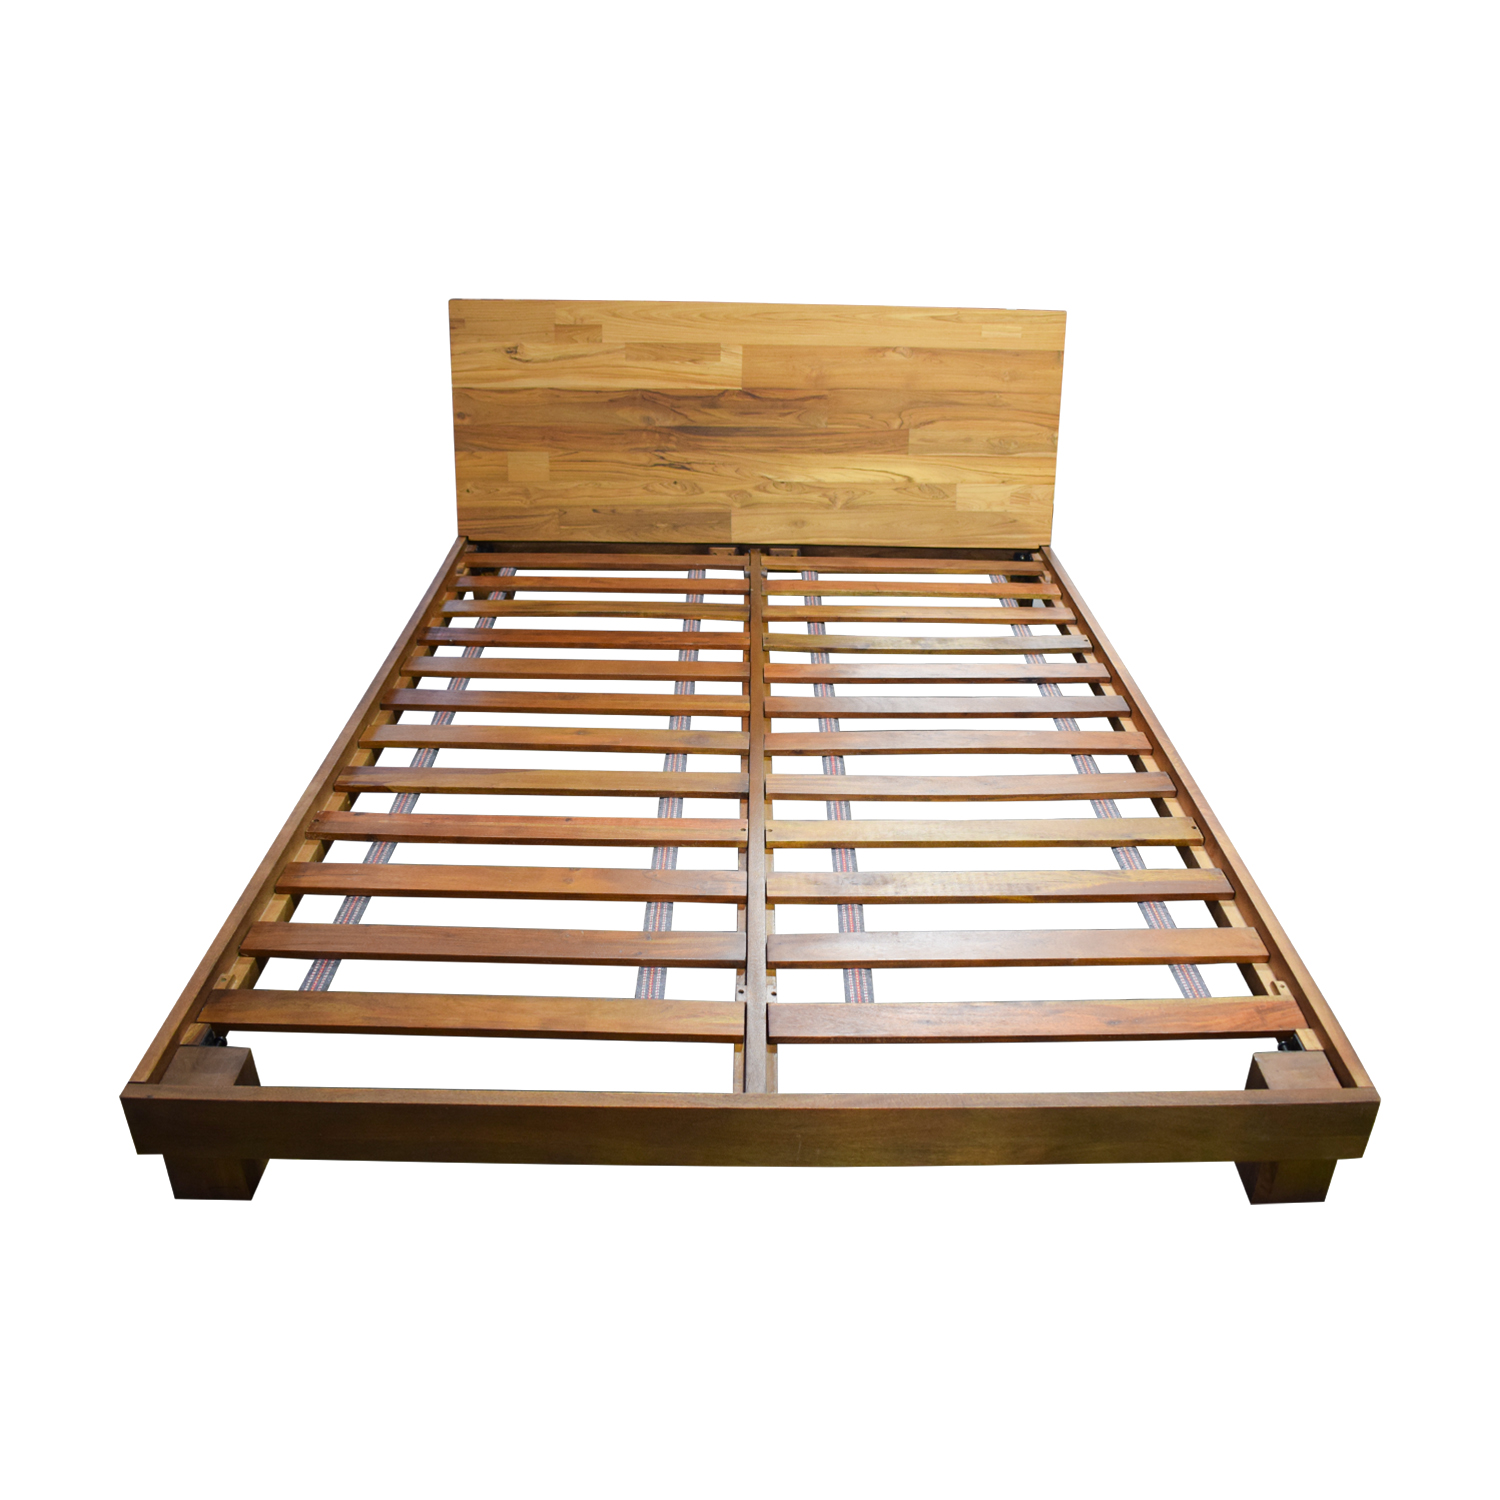 Queen Size Beds For Sale Bed Frames Used Bed Frames For Sale